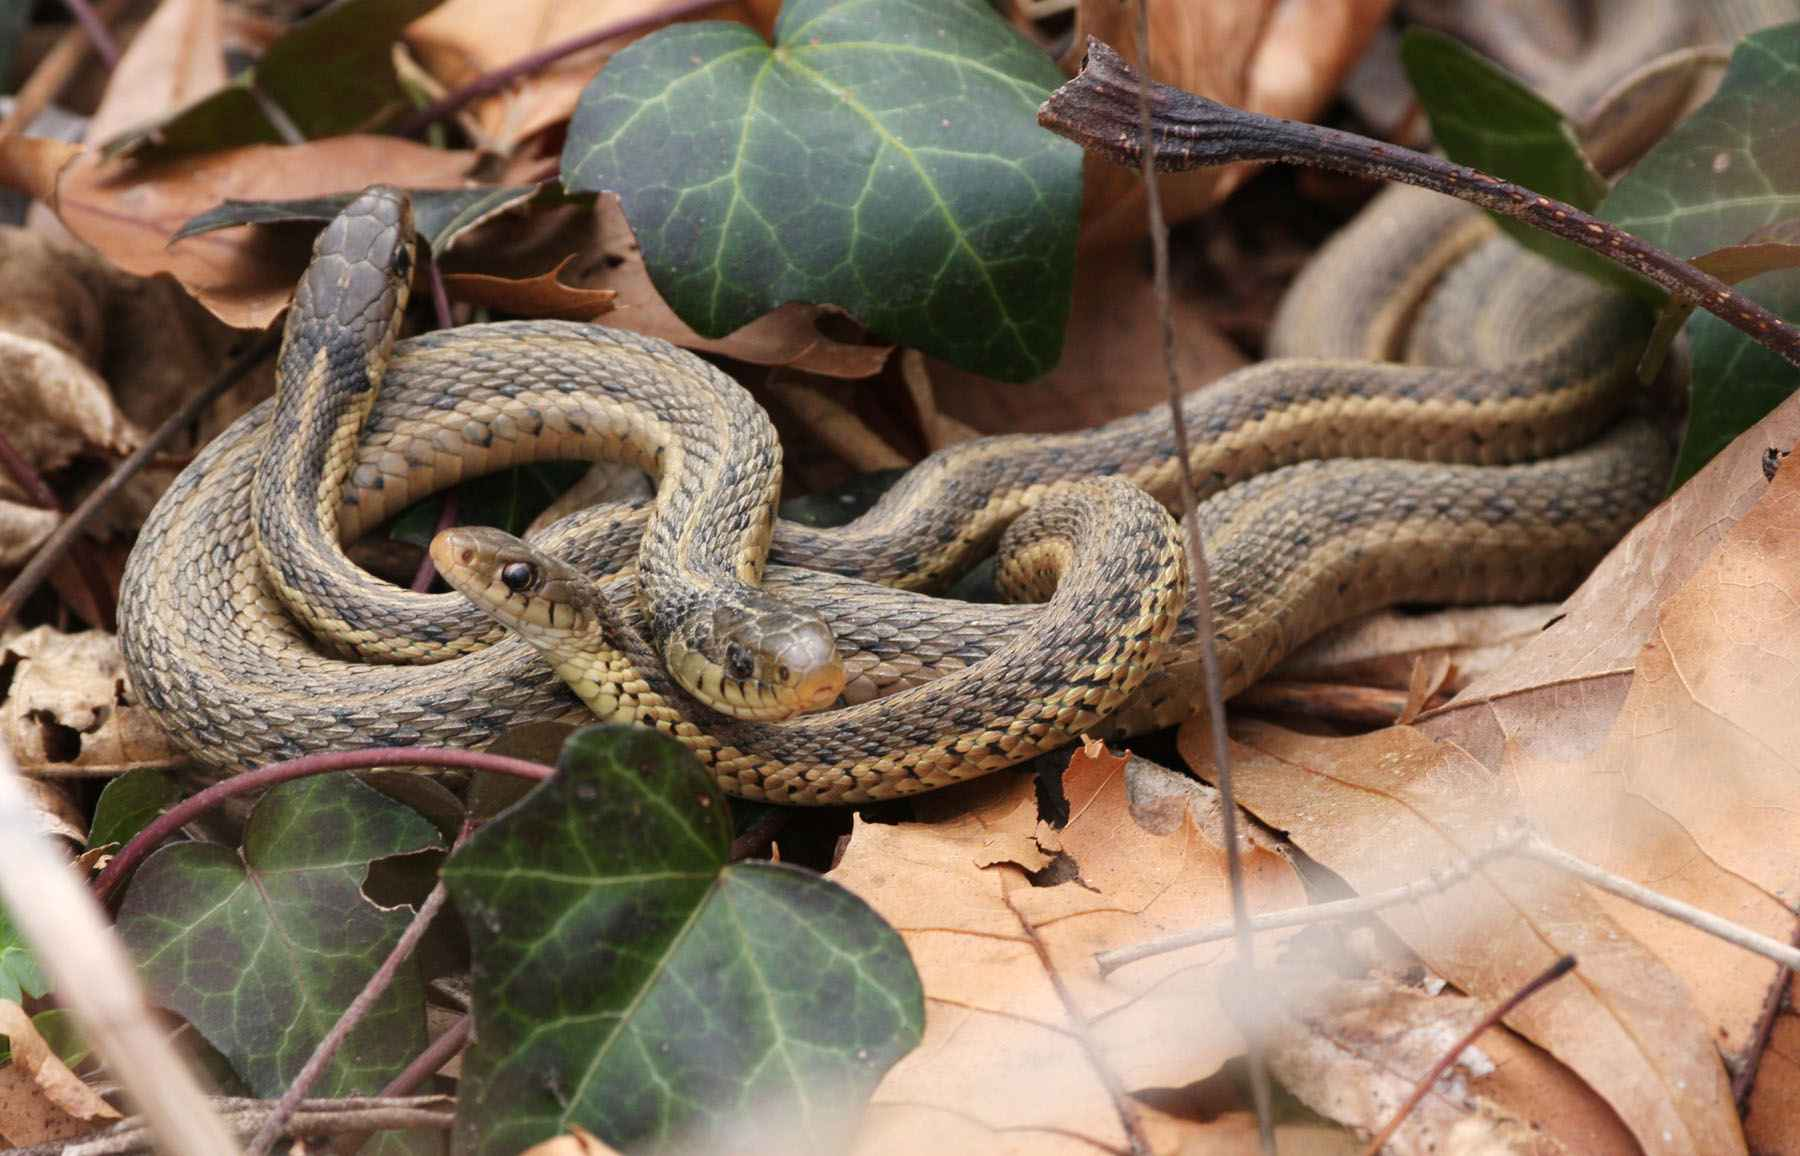 Want to Repel Snakes Naturally?